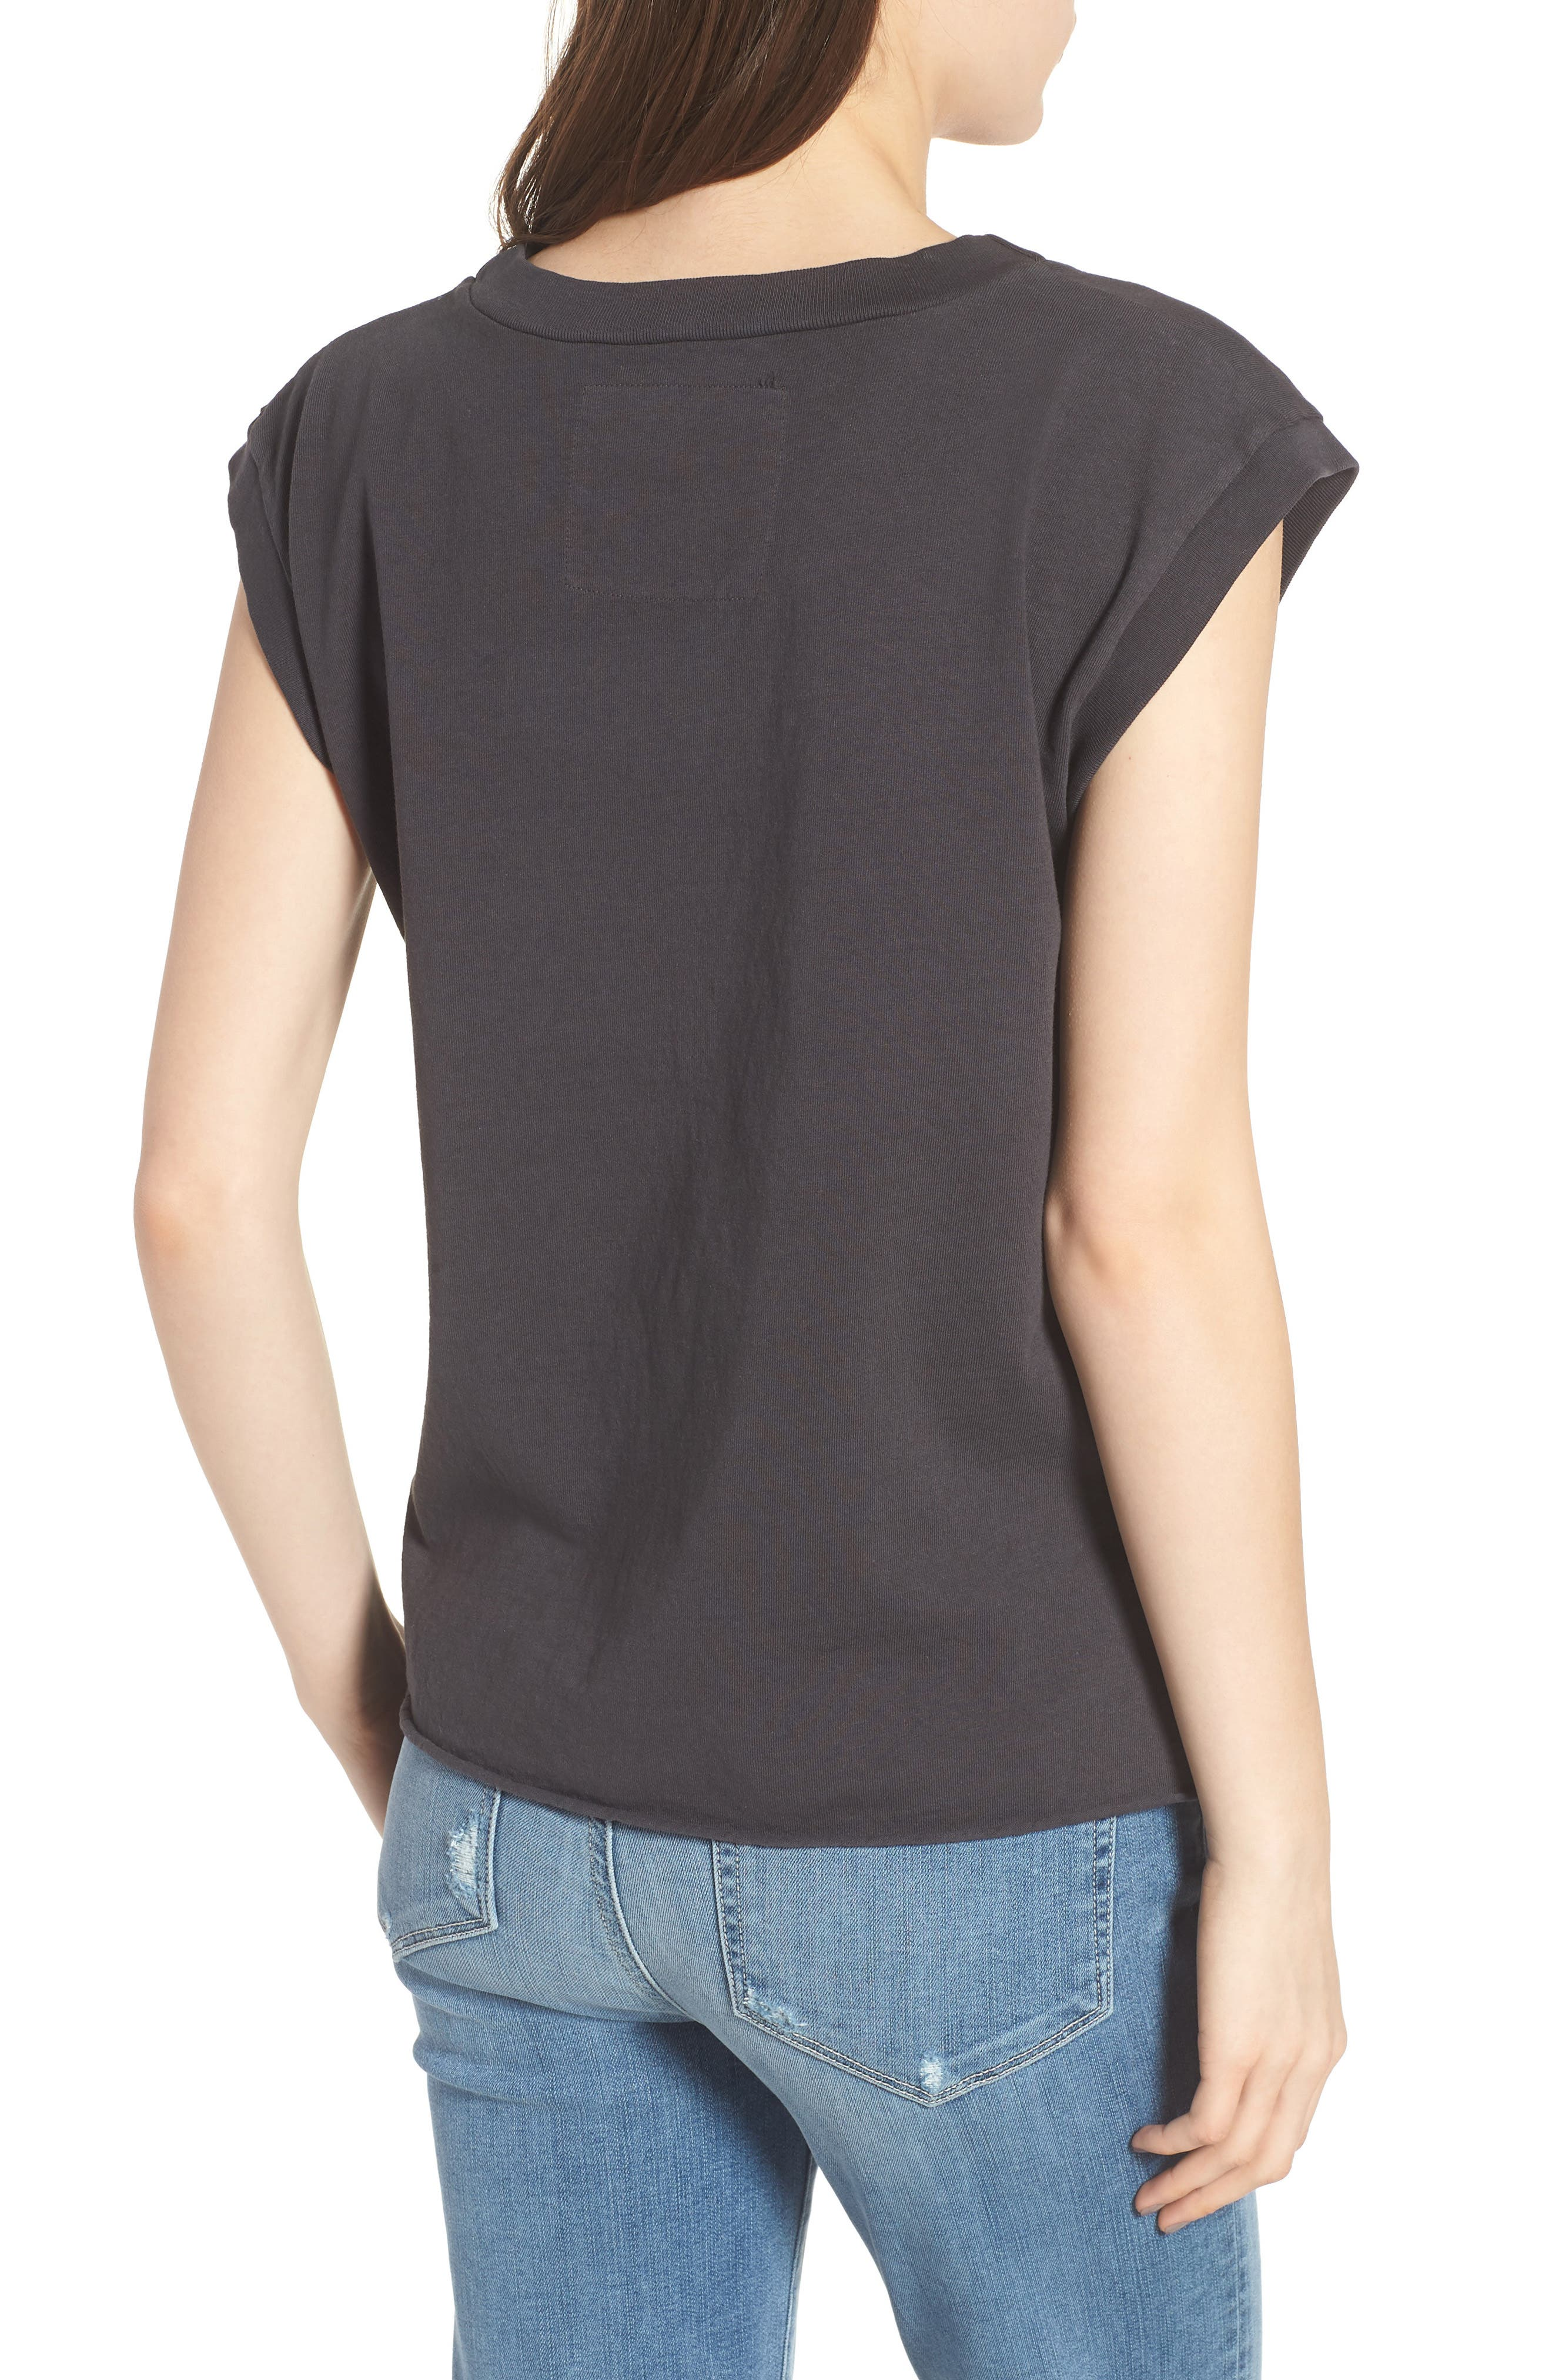 Muscle Tee,                             Alternate thumbnail 2, color,                             020